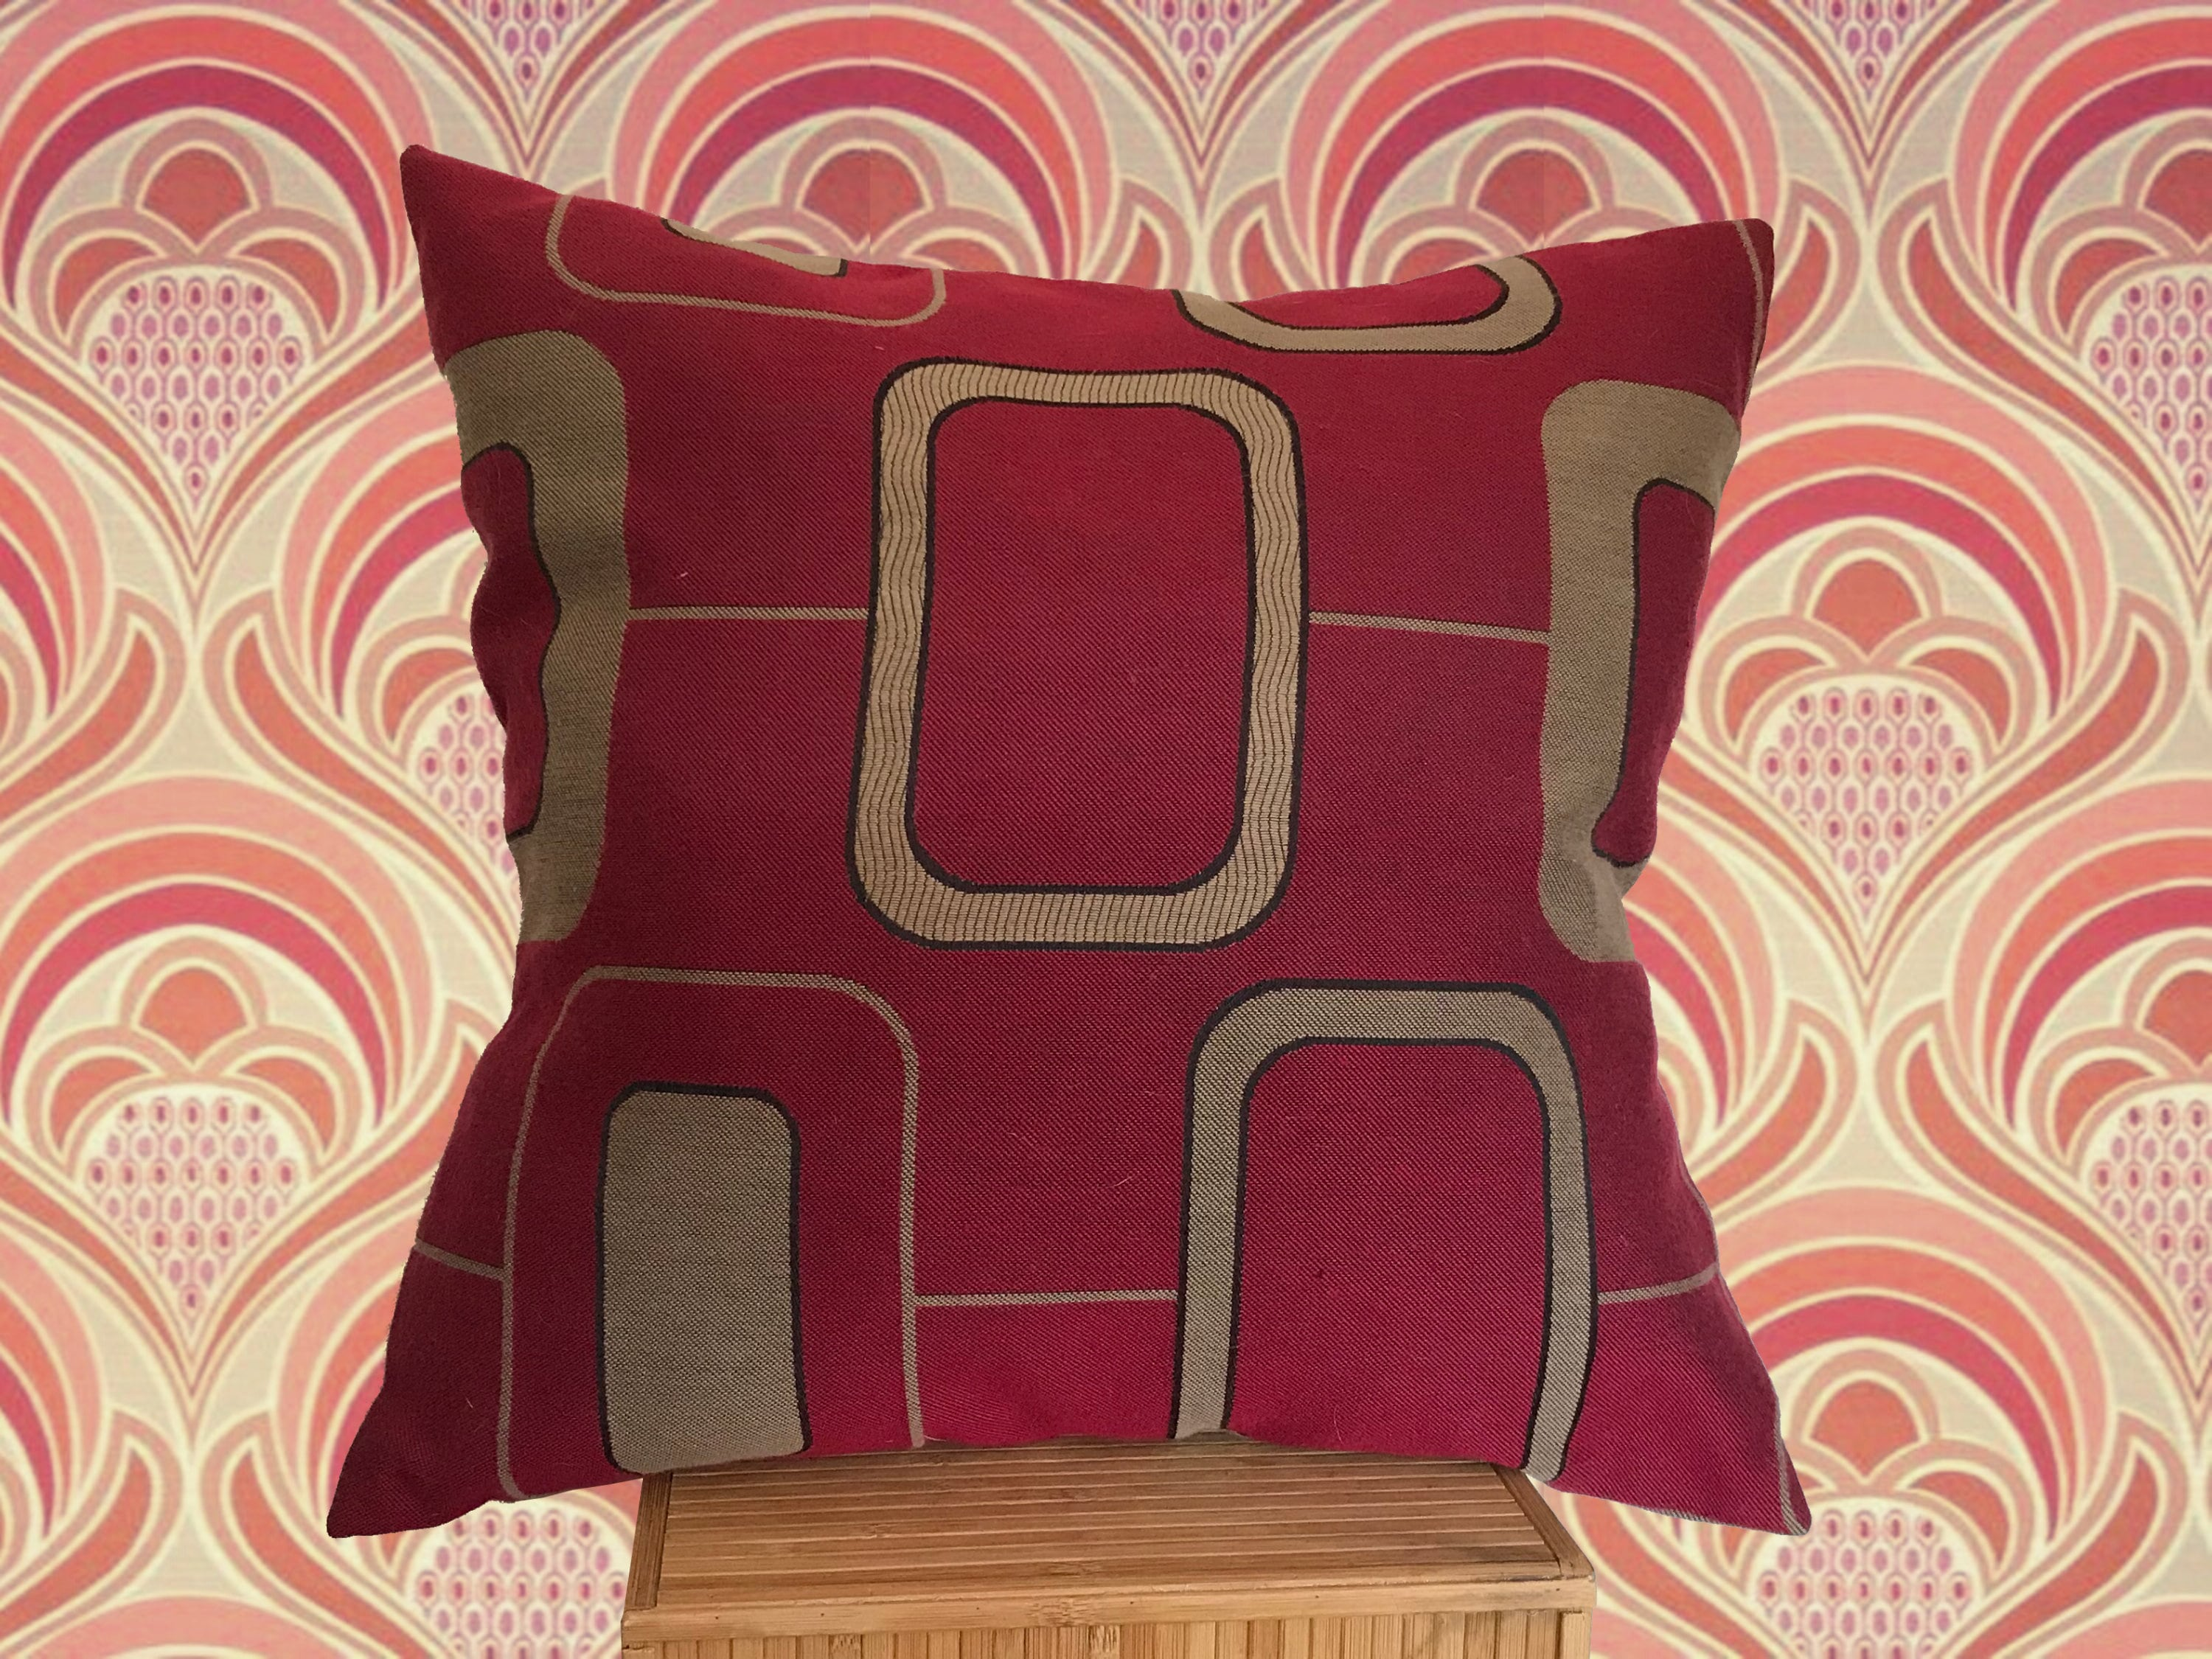 Retro 21s Design Cushion, Wine Red and Burnished Gold Geometric Pattern